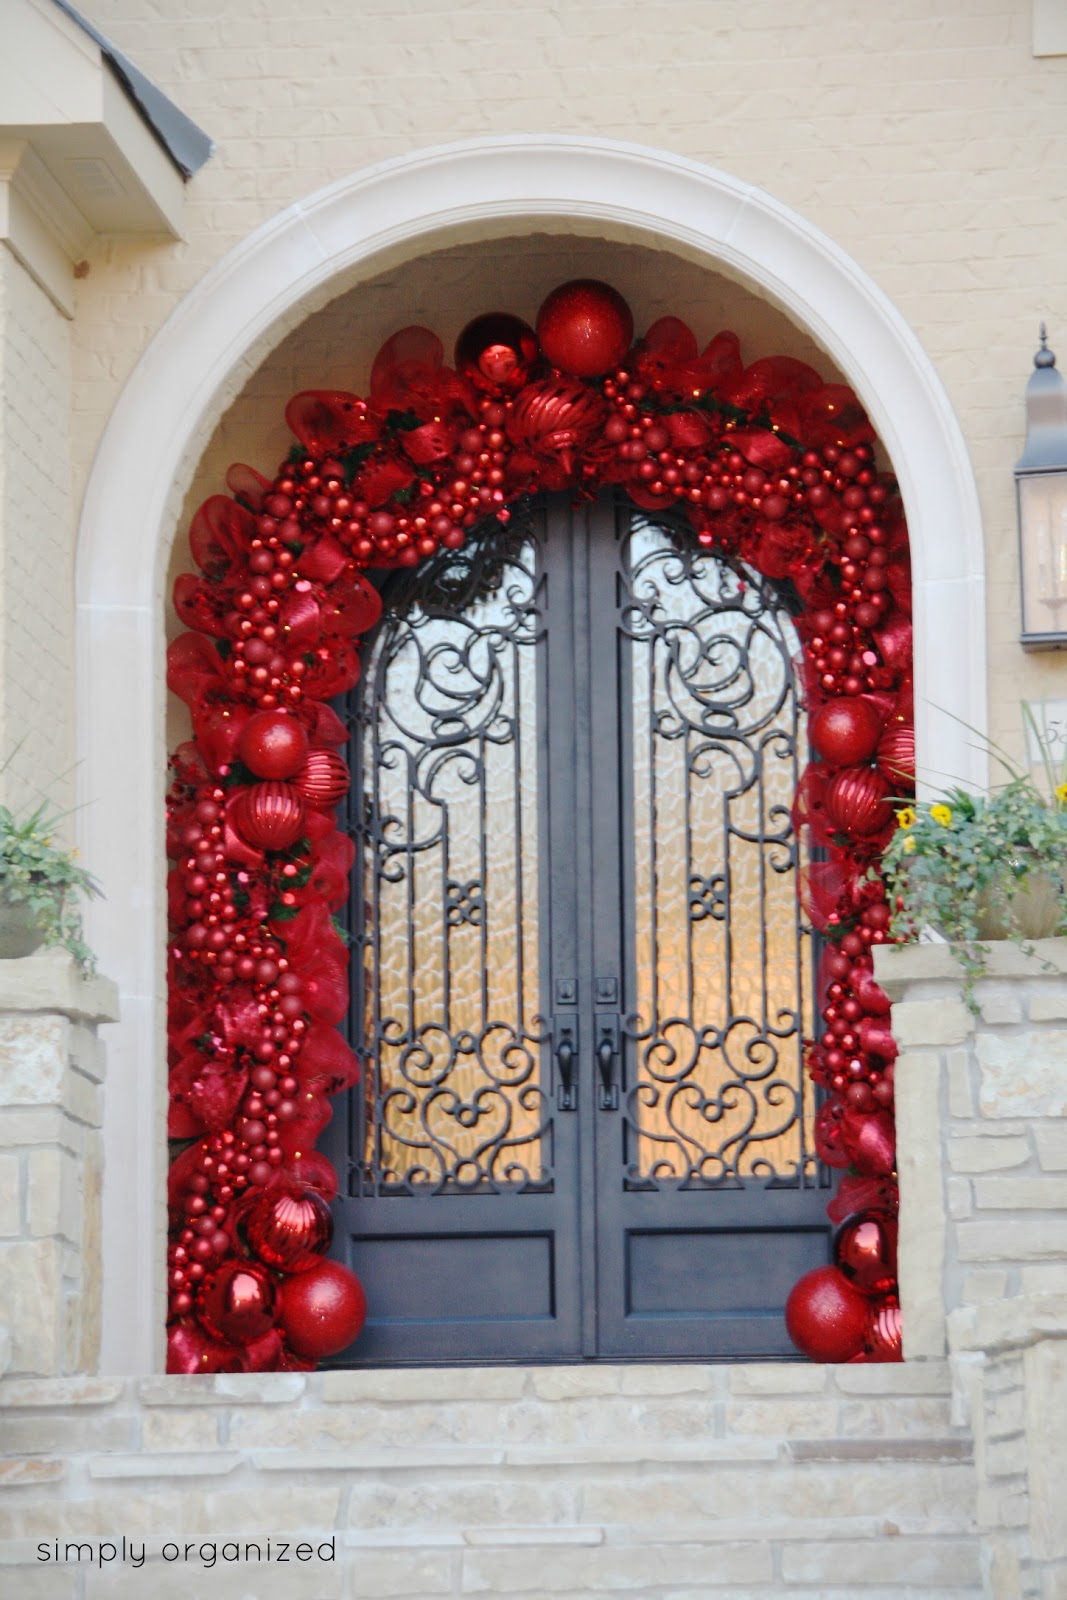 Garage door christmas decorating ideas - 30 Christmas Door Decorating Ideas Best Decorations For Your Front Door